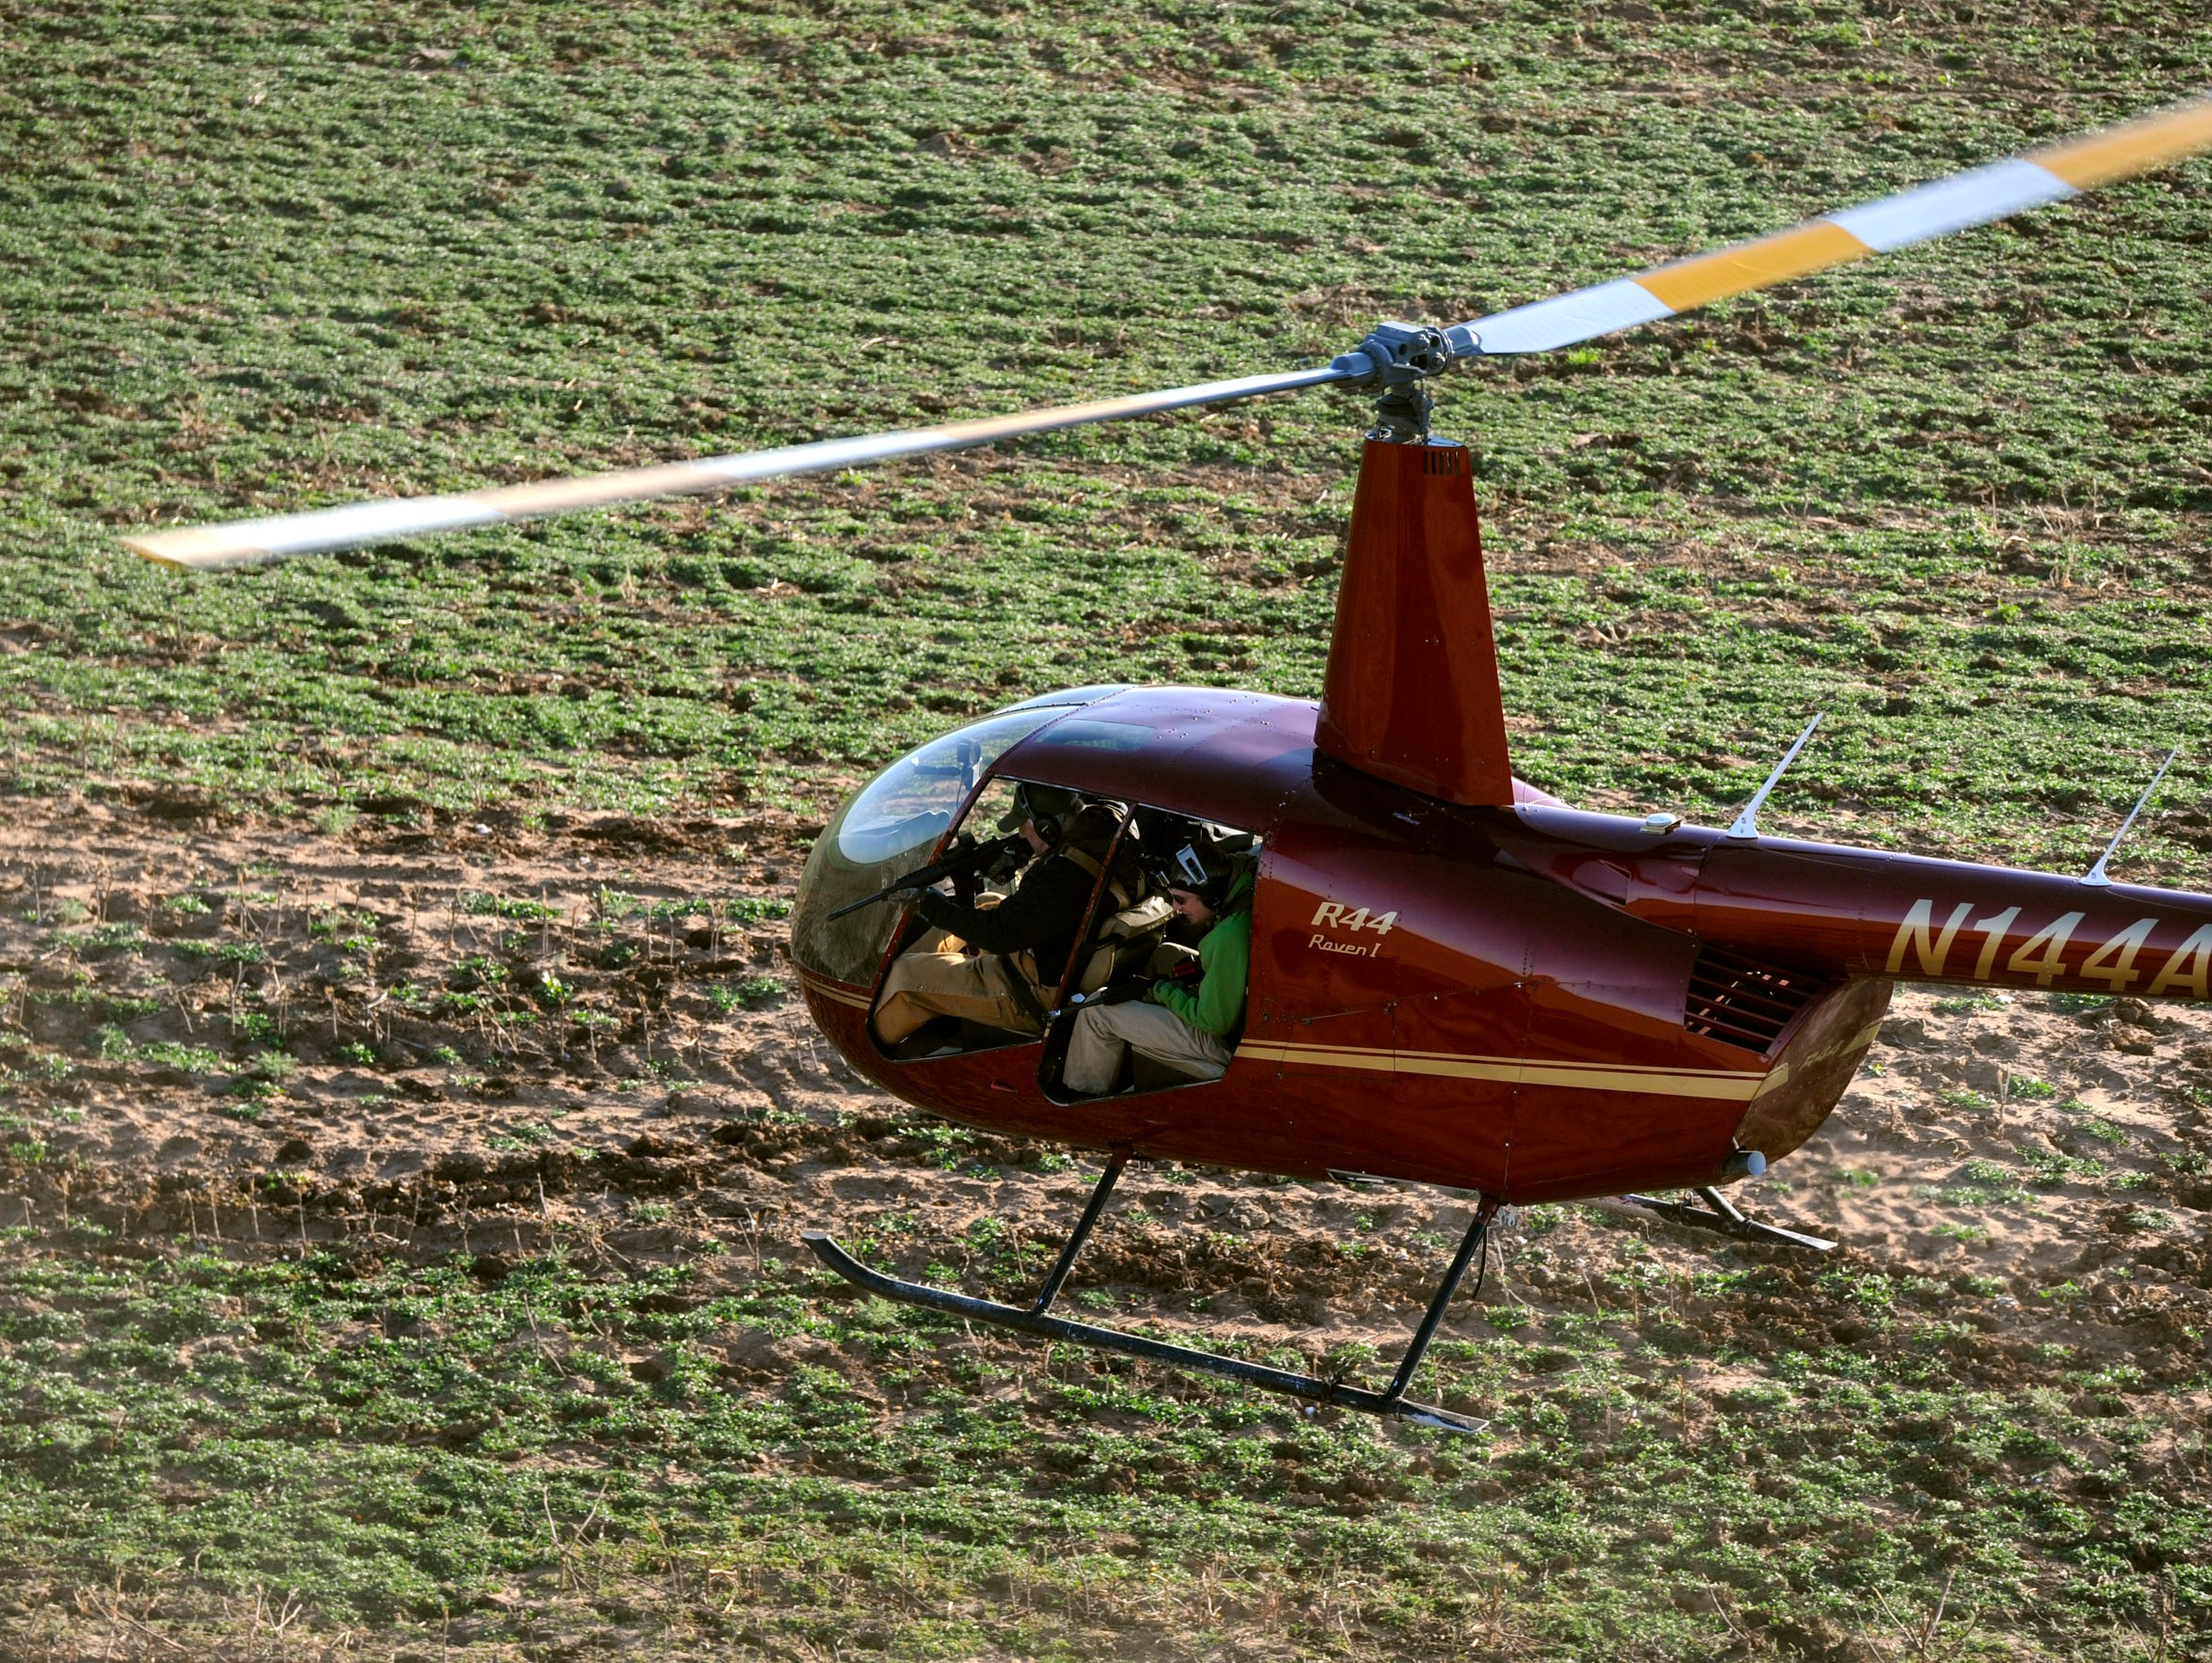 Hunters shoot at feral hogs from a helicopter while